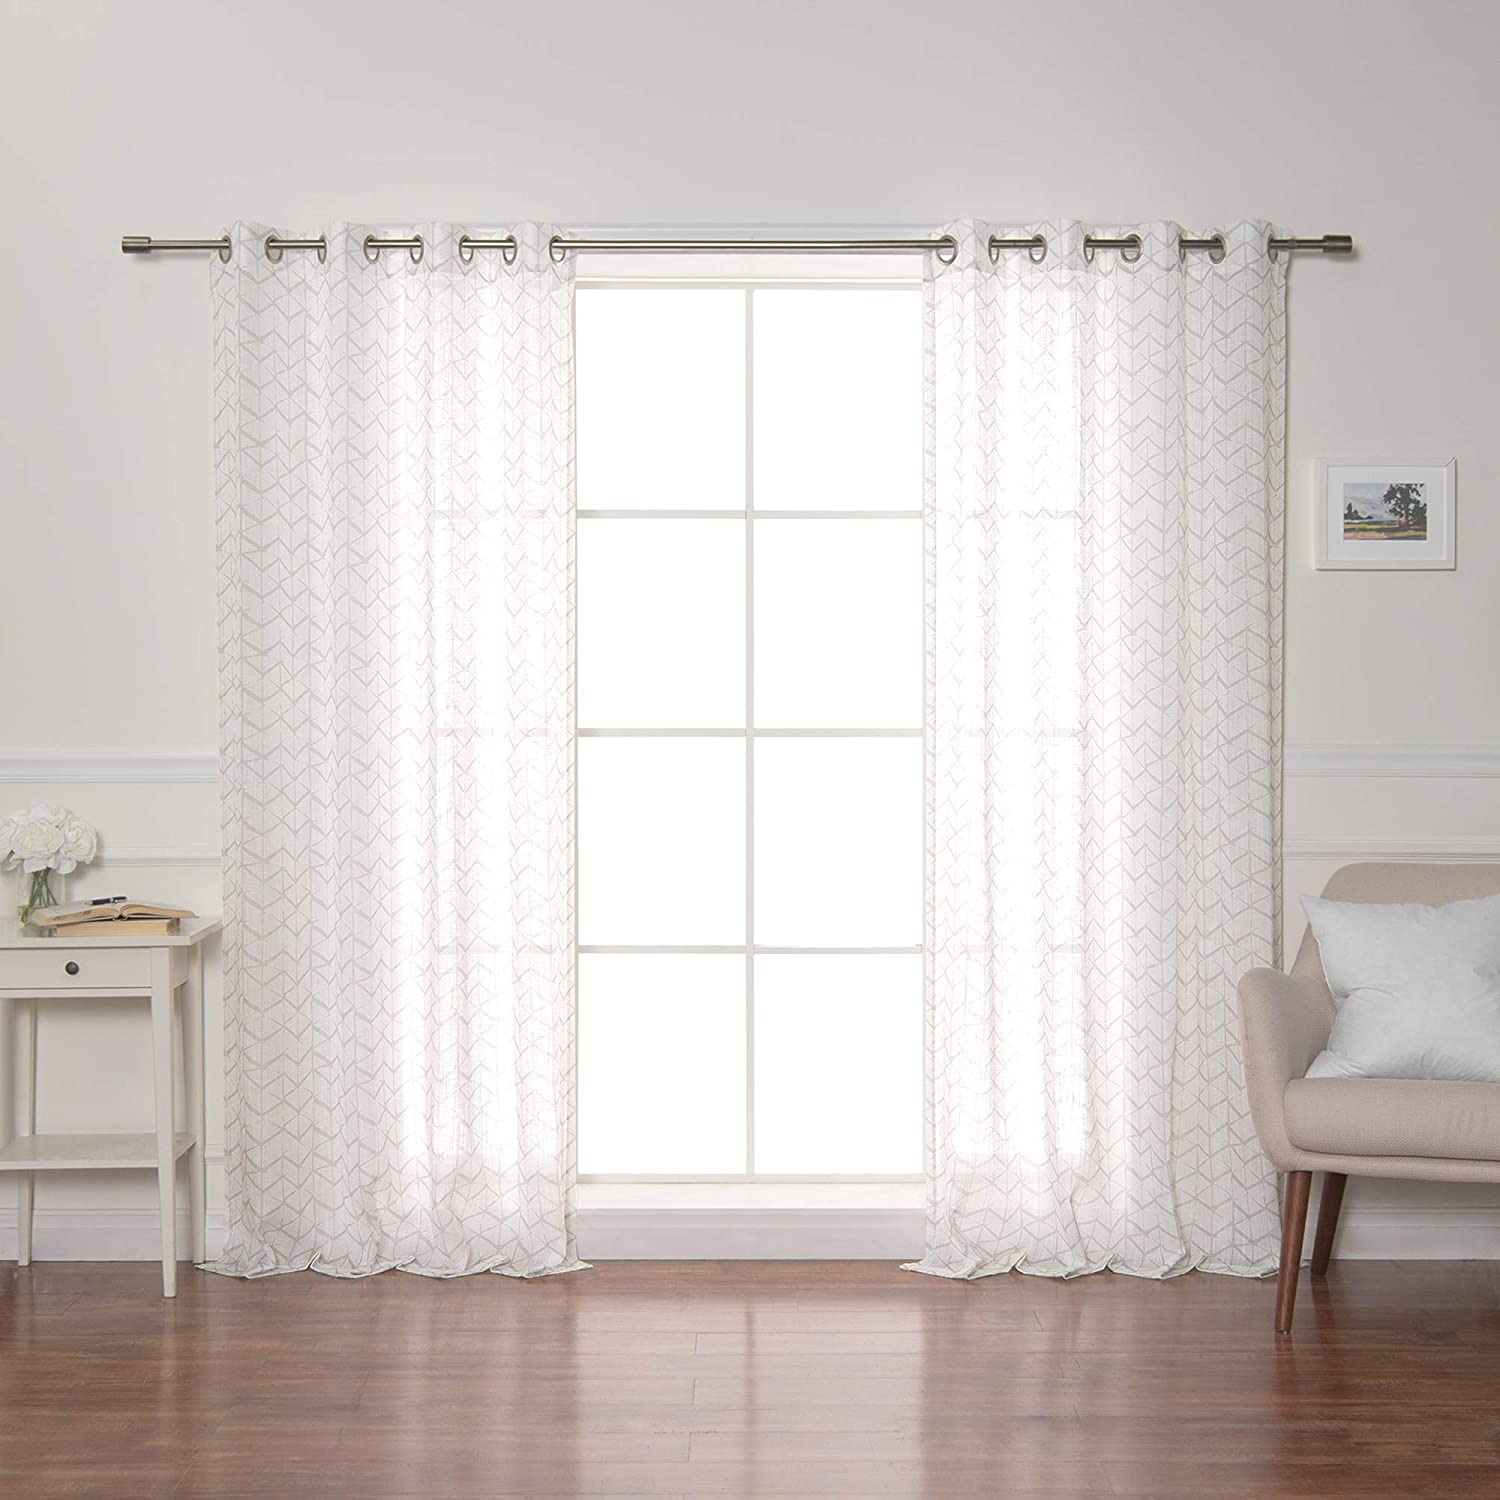 Best Home Fashion Opaque Cube - 2020春夏新作 Curtains Steel 特価品コーナー☆ Grommets Silver